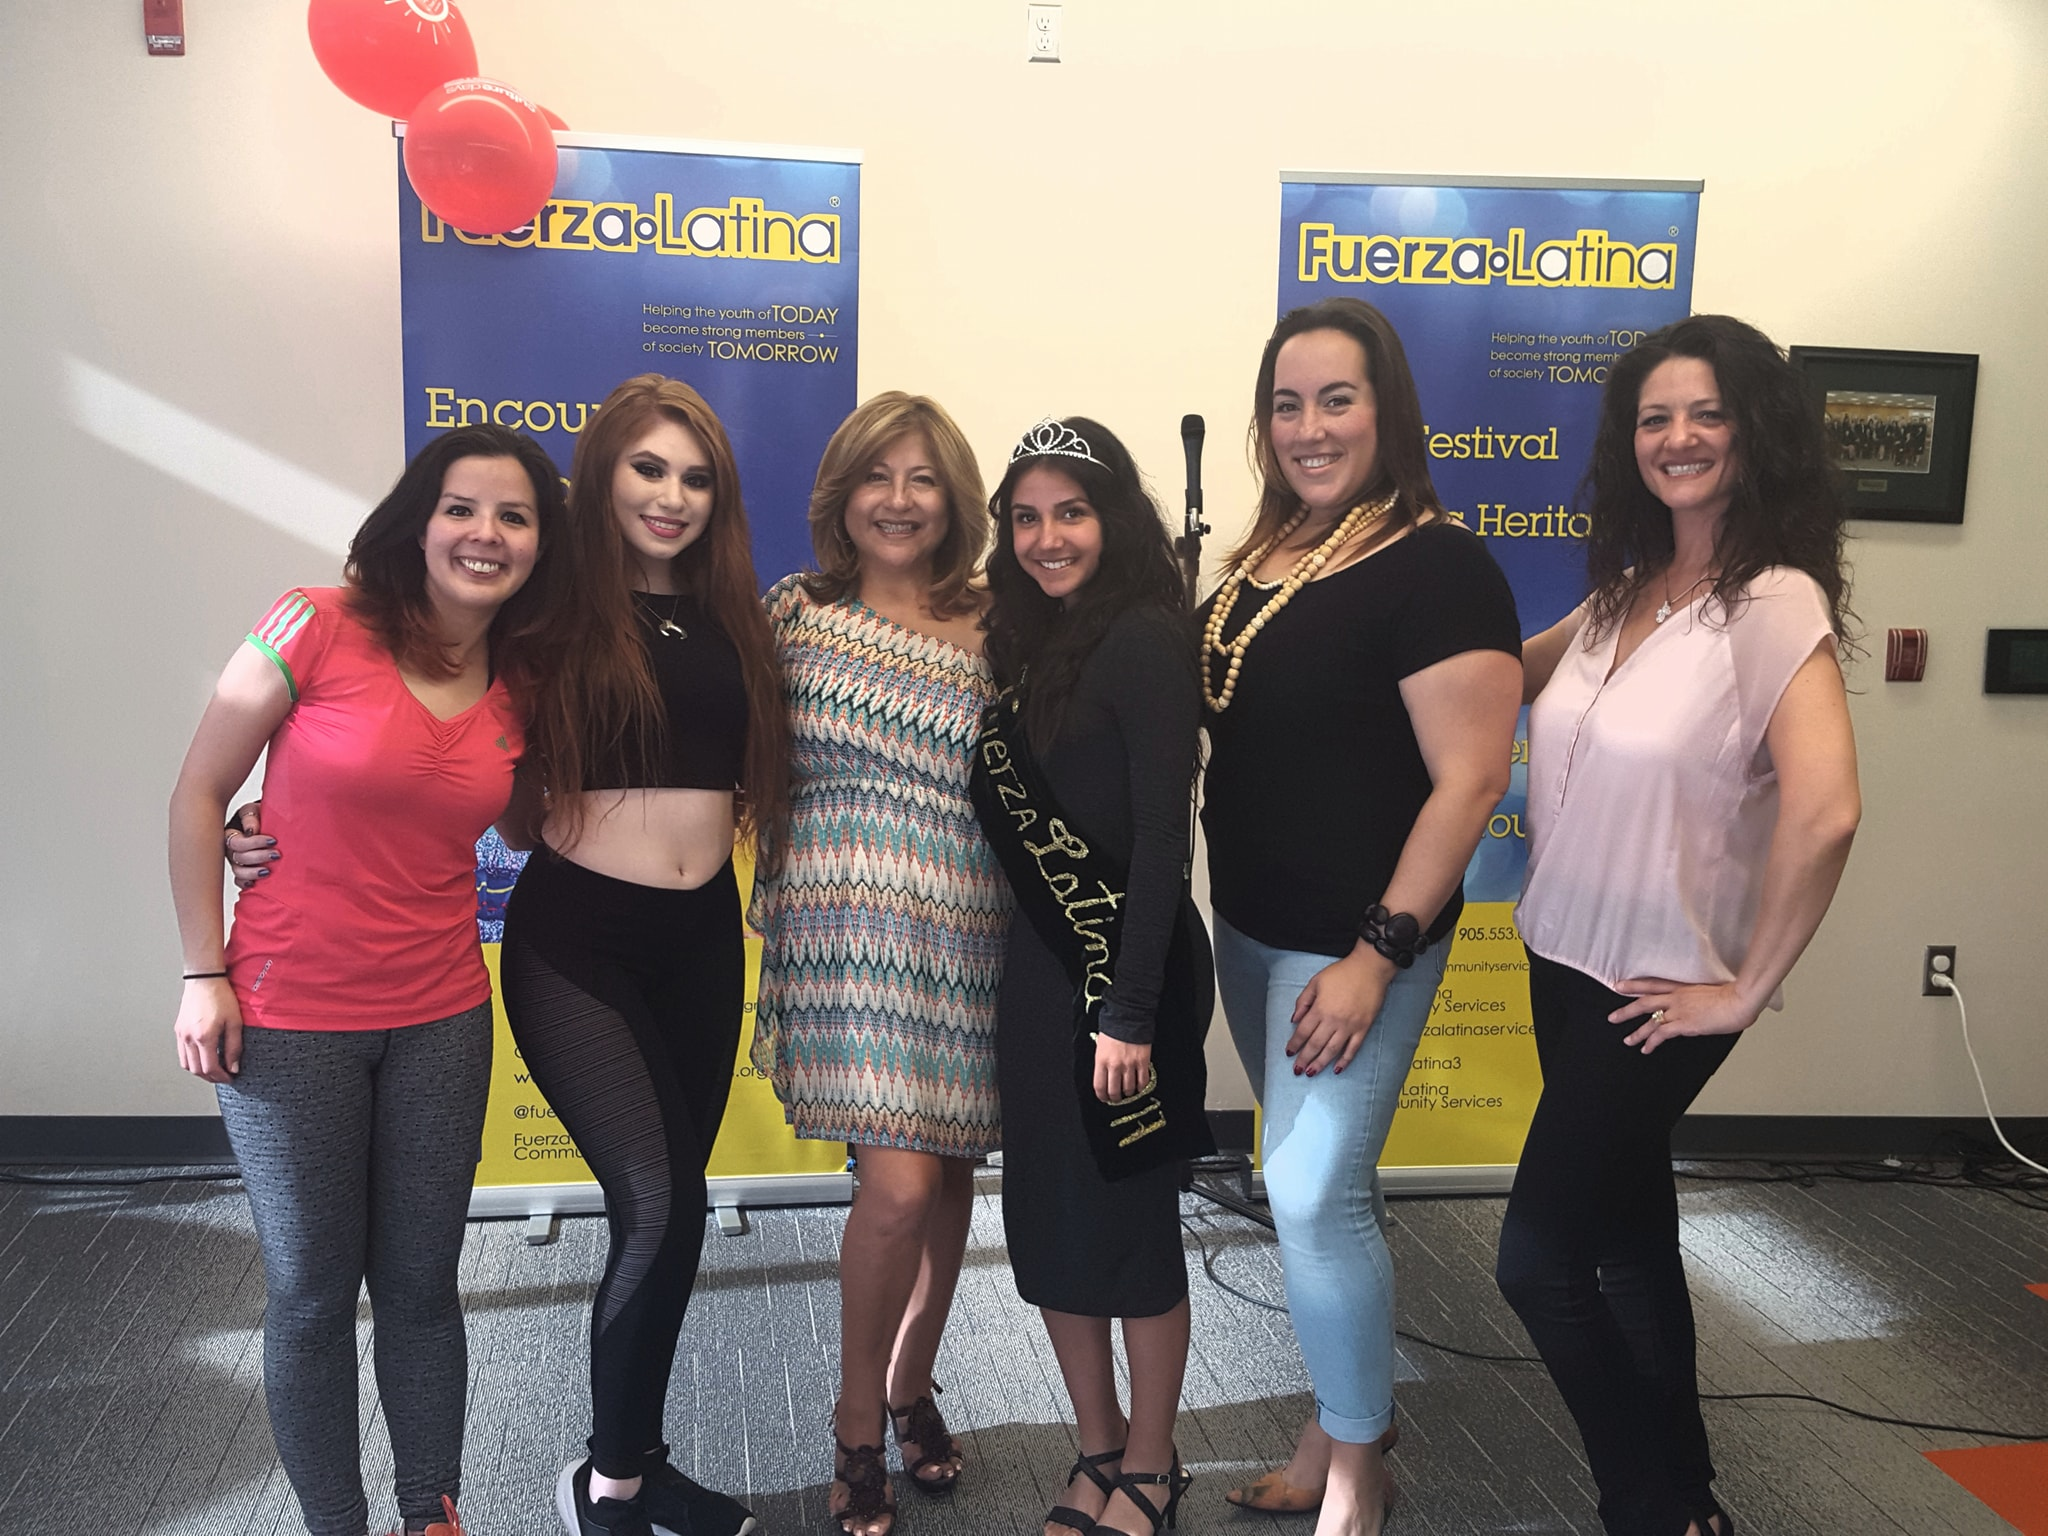 Vaughan Culture Days - Fuerza Latina